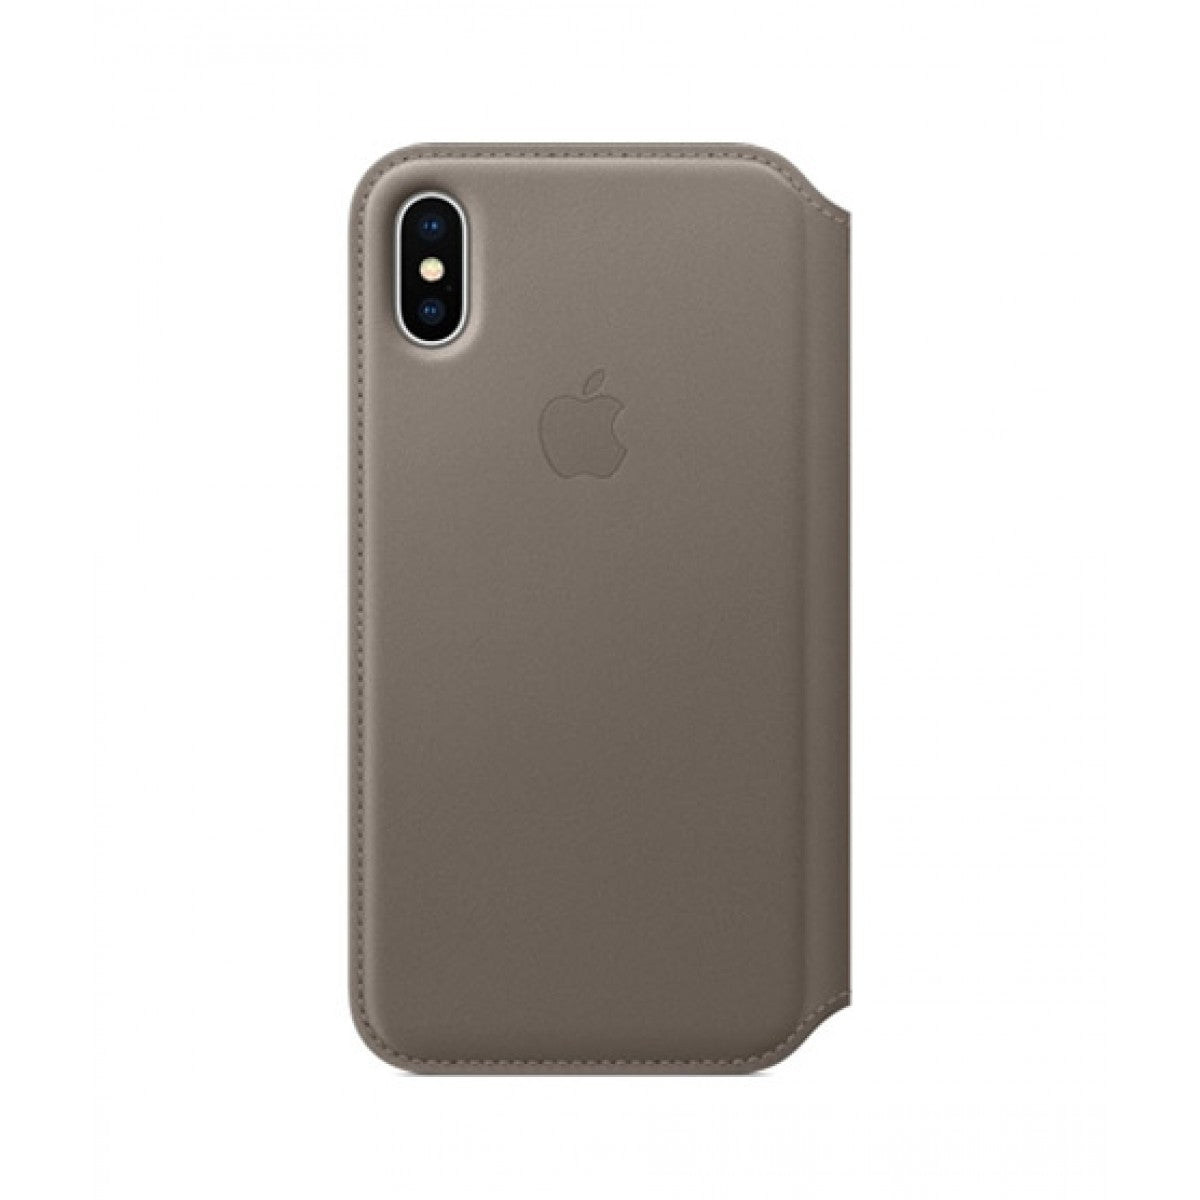 Apple iPhone X / XS Leather Folio - Taupe